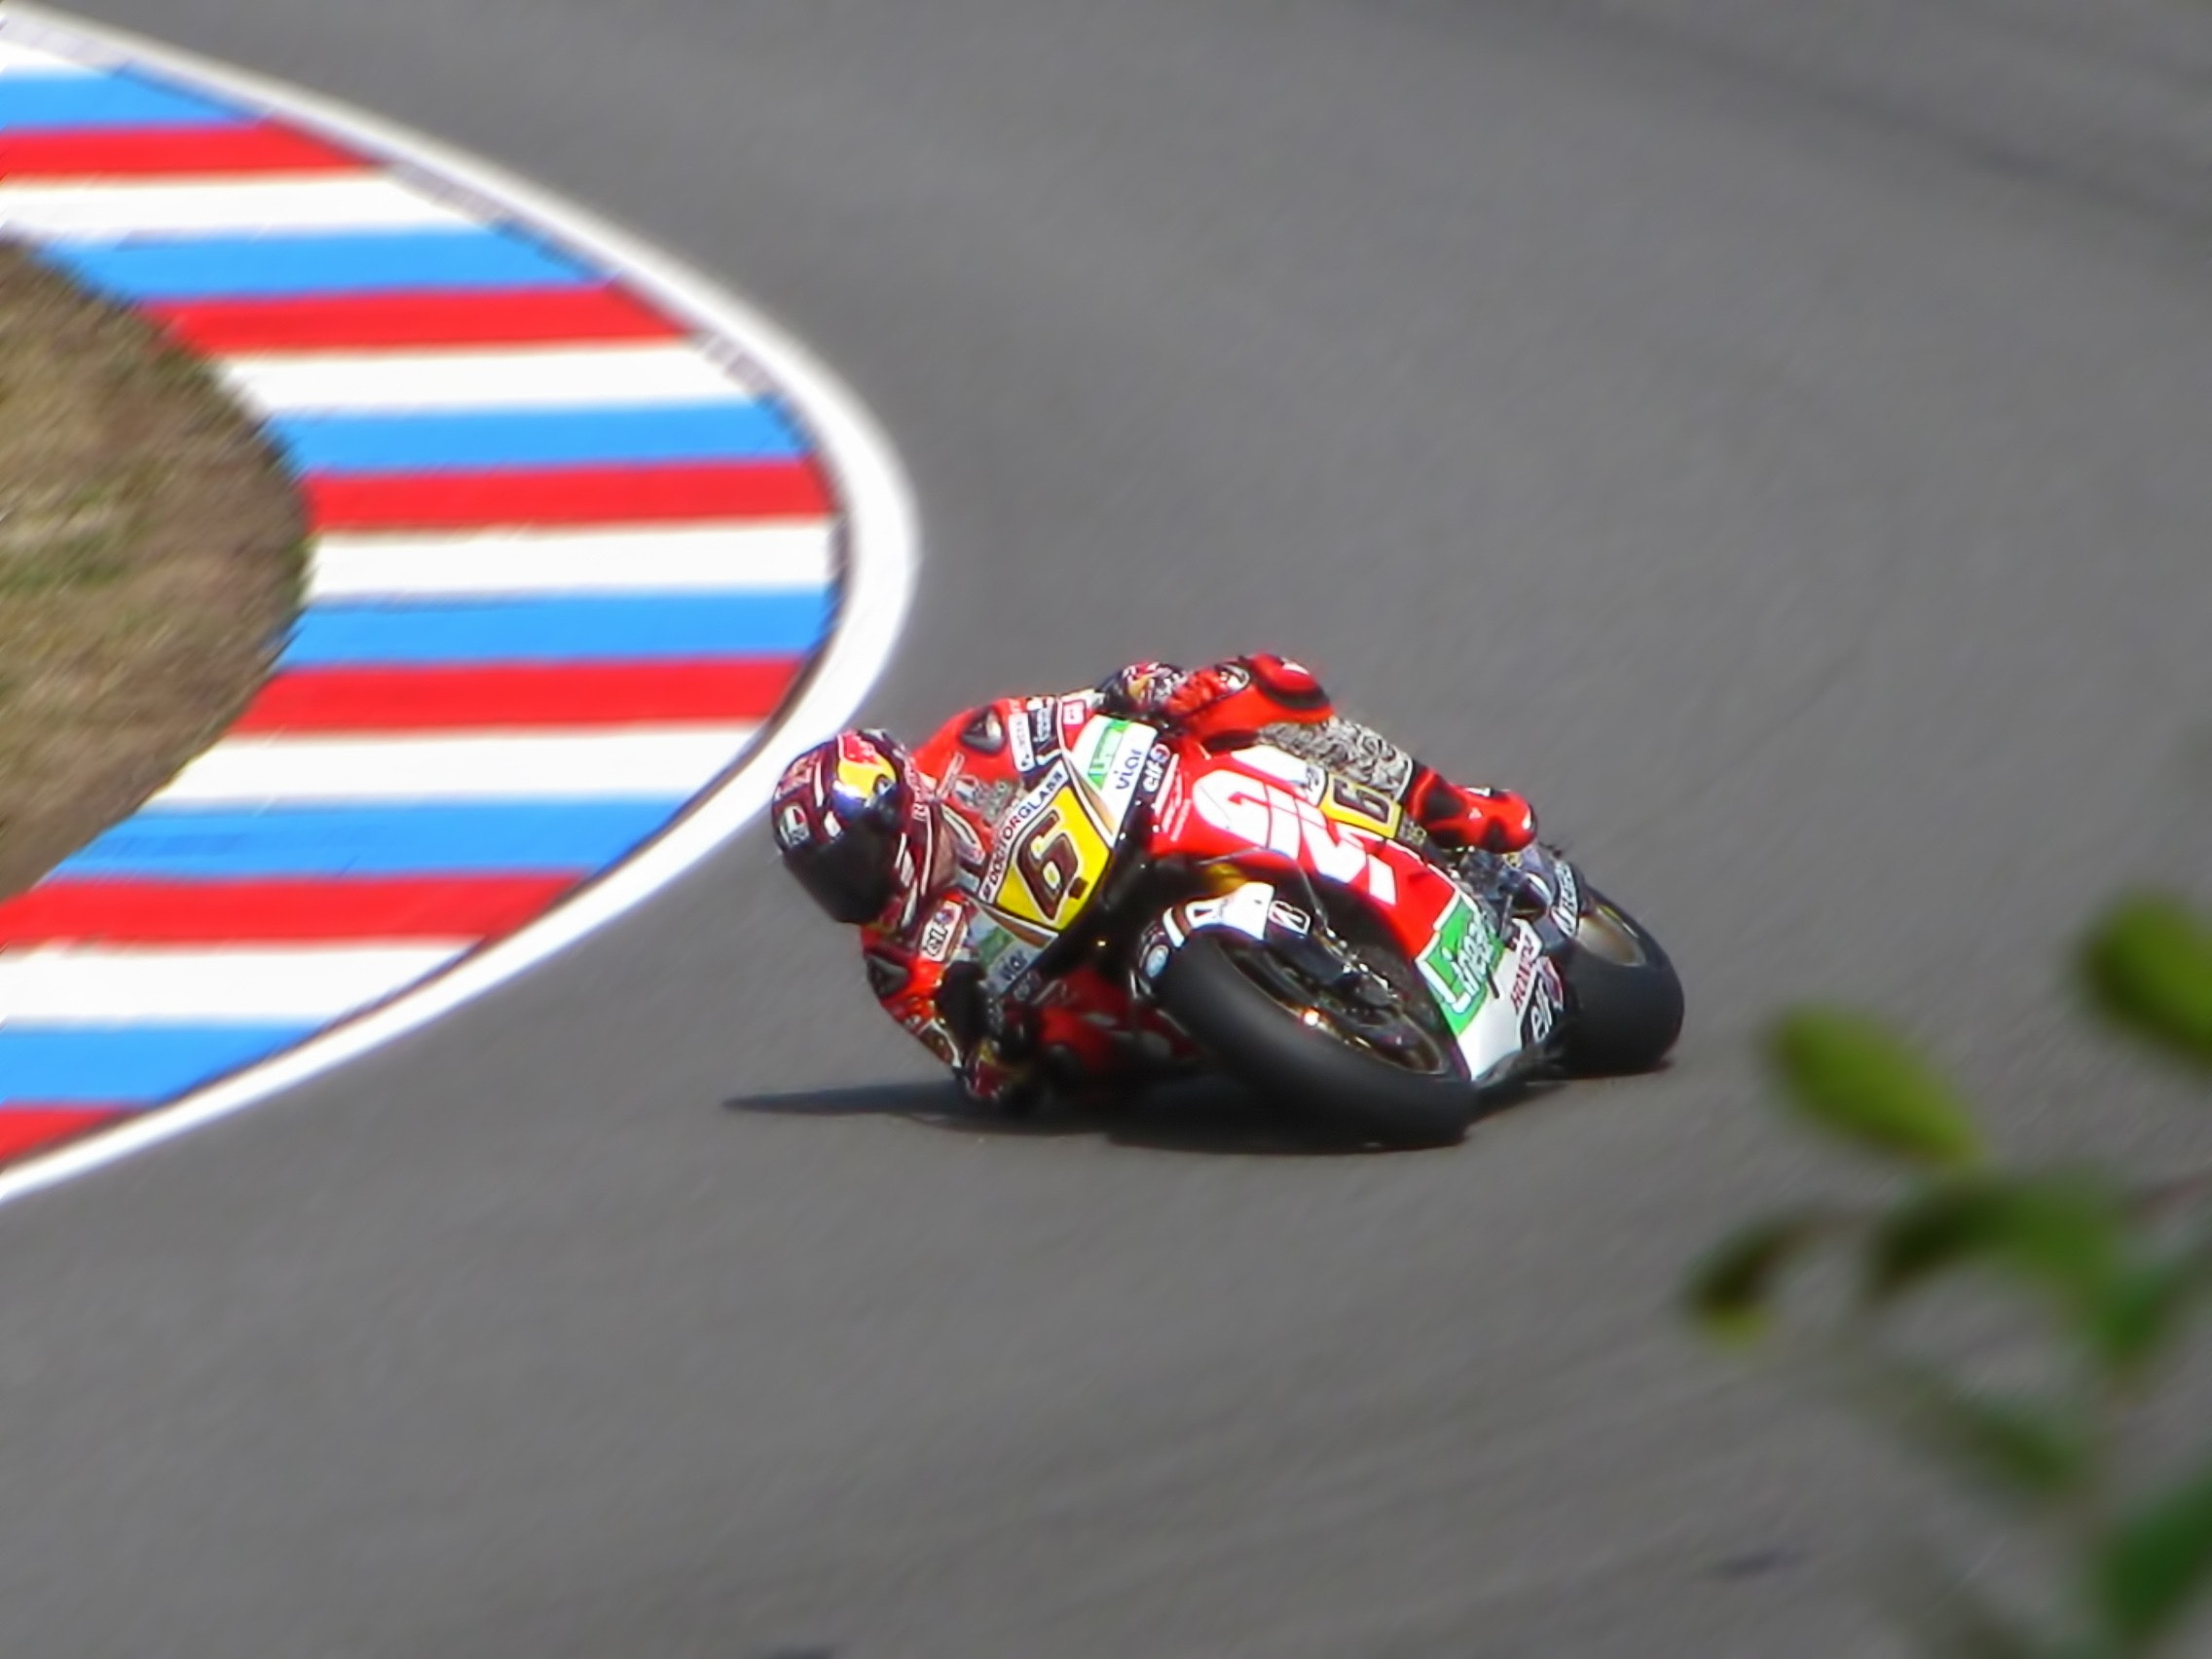 Things to do to become a MotoGP sponsor